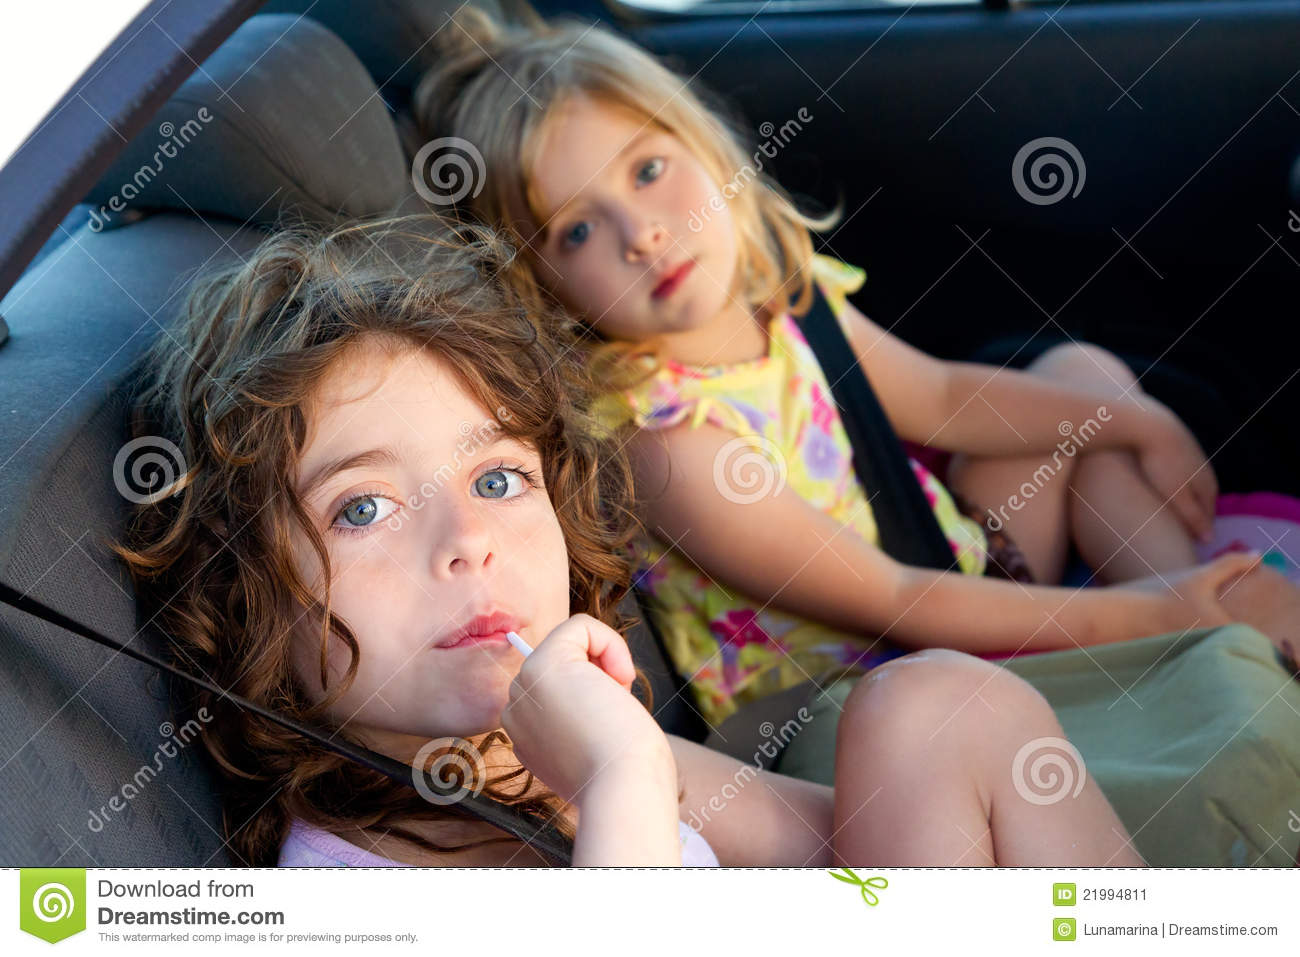 small toddler chair folding hanging rack little girls inside car eating candy stick stock image - image: 21994811